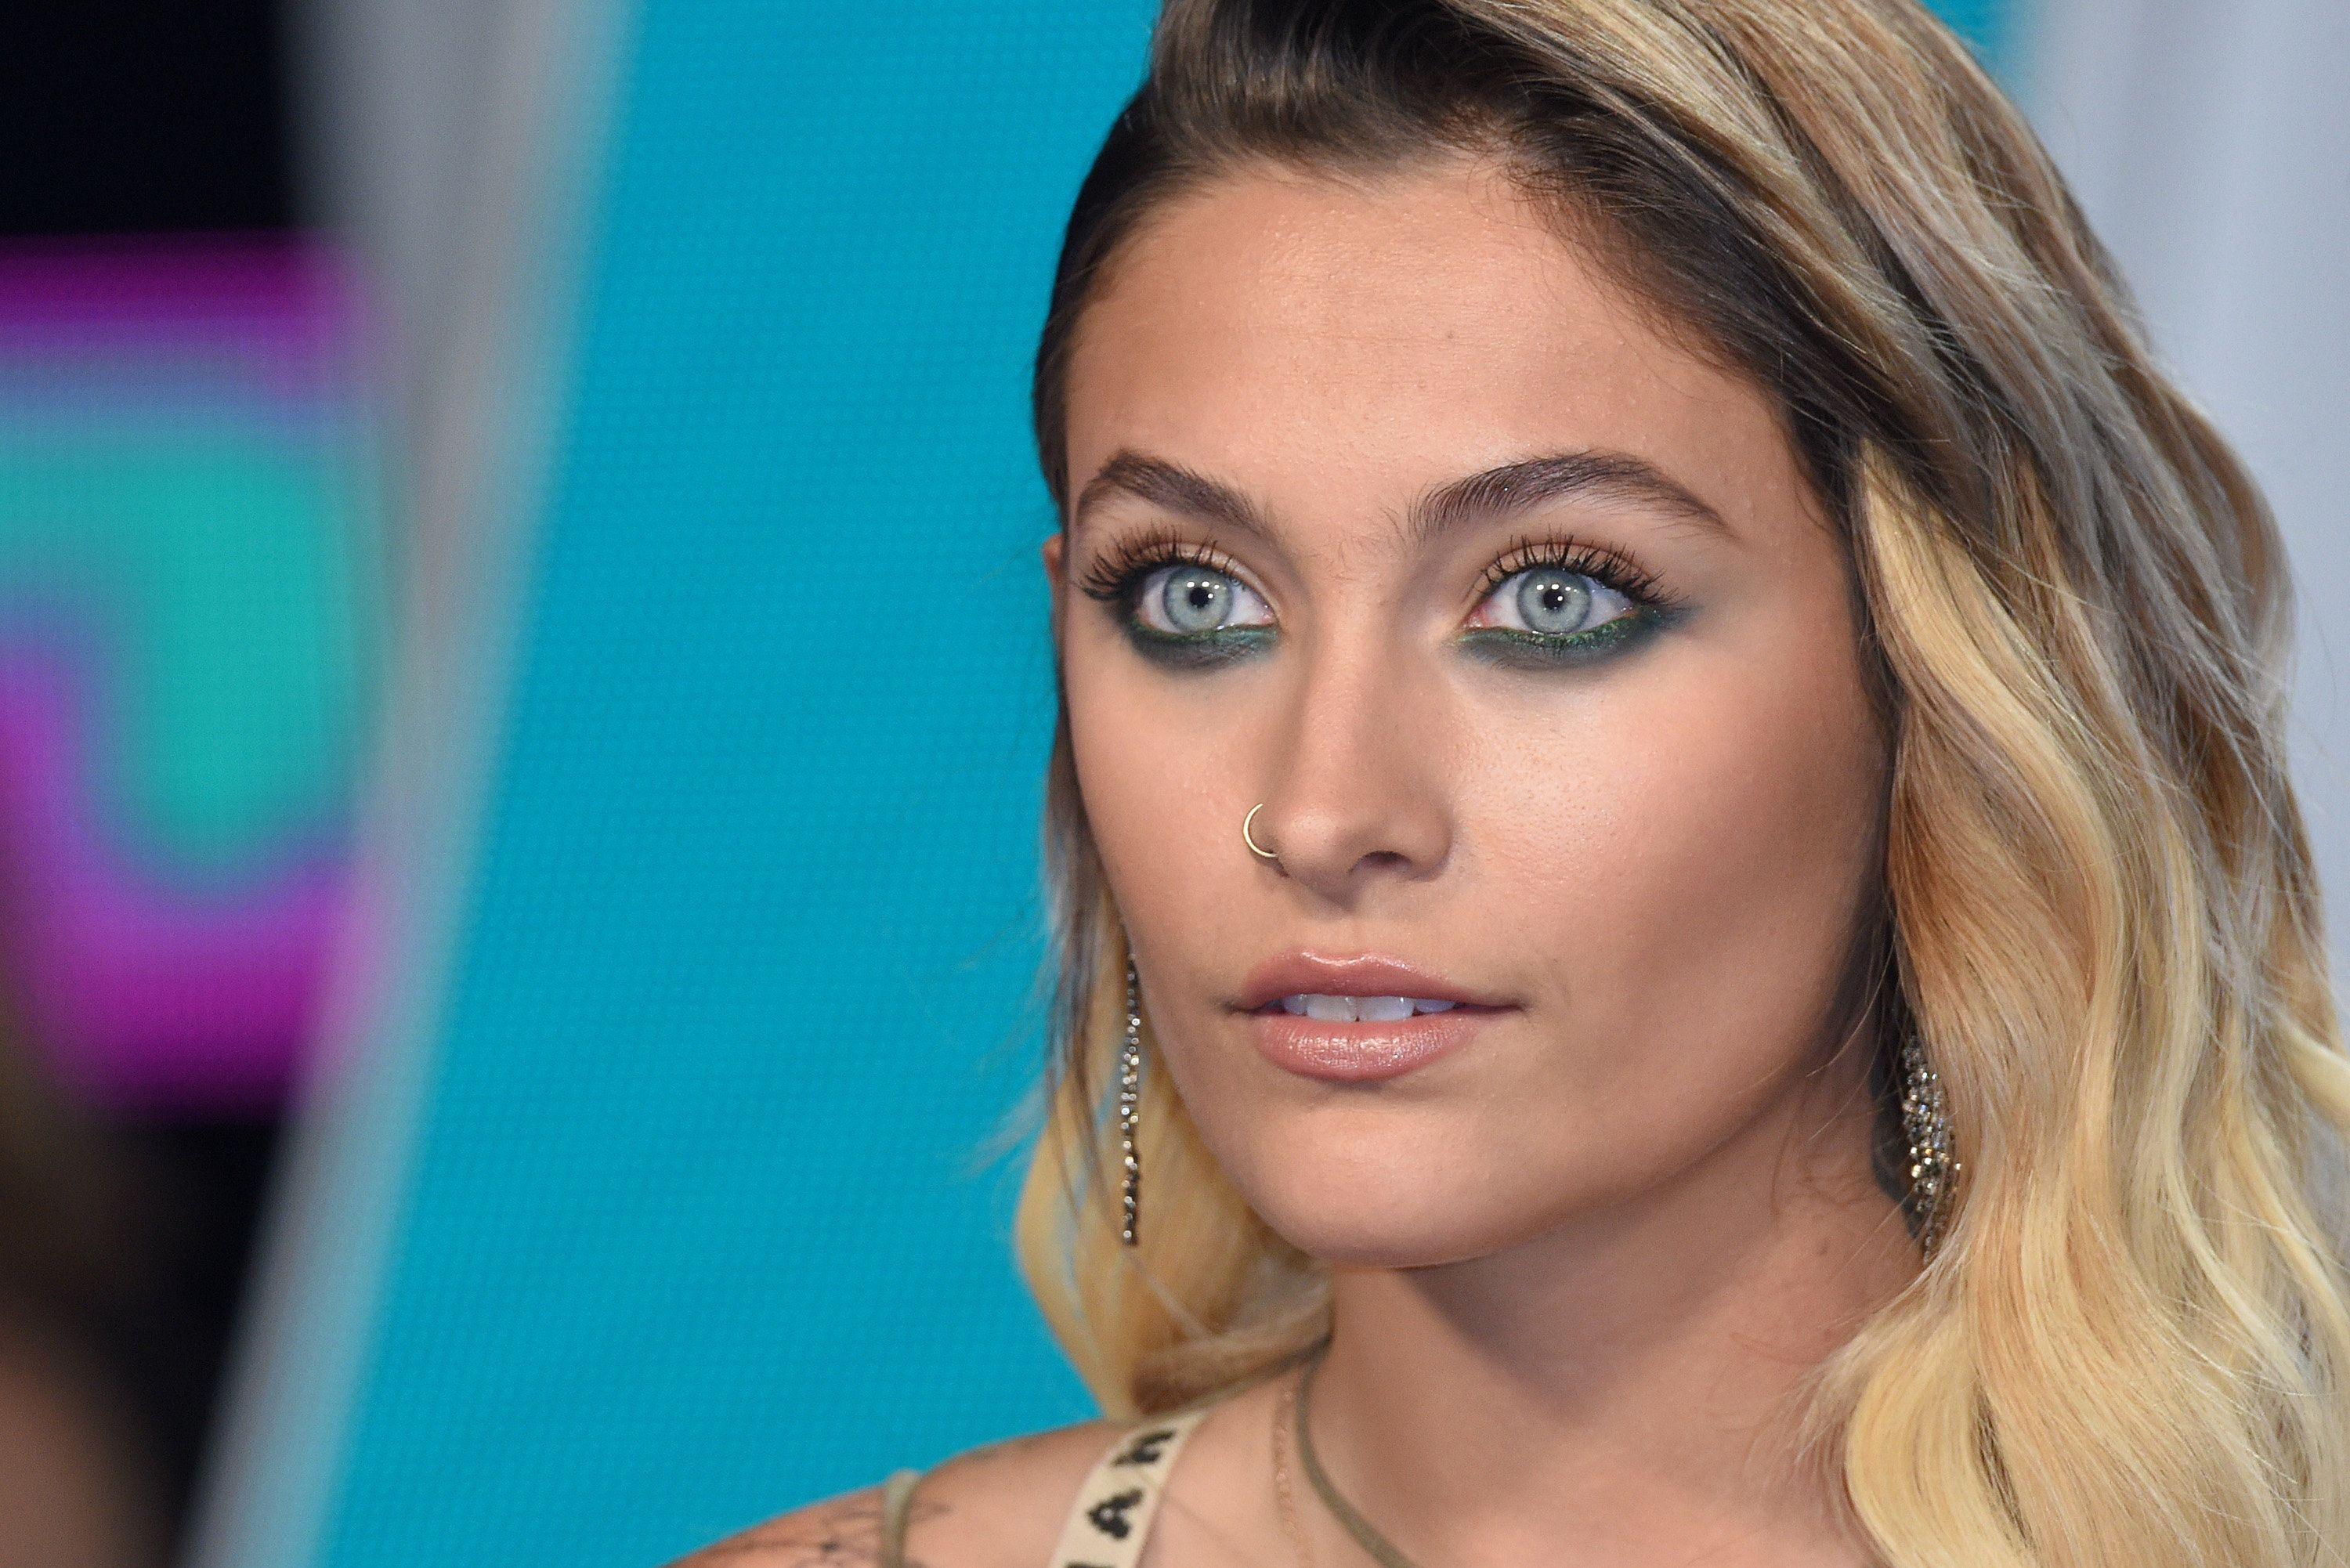 Paris Jackson bares all to show off her new chest tattoo